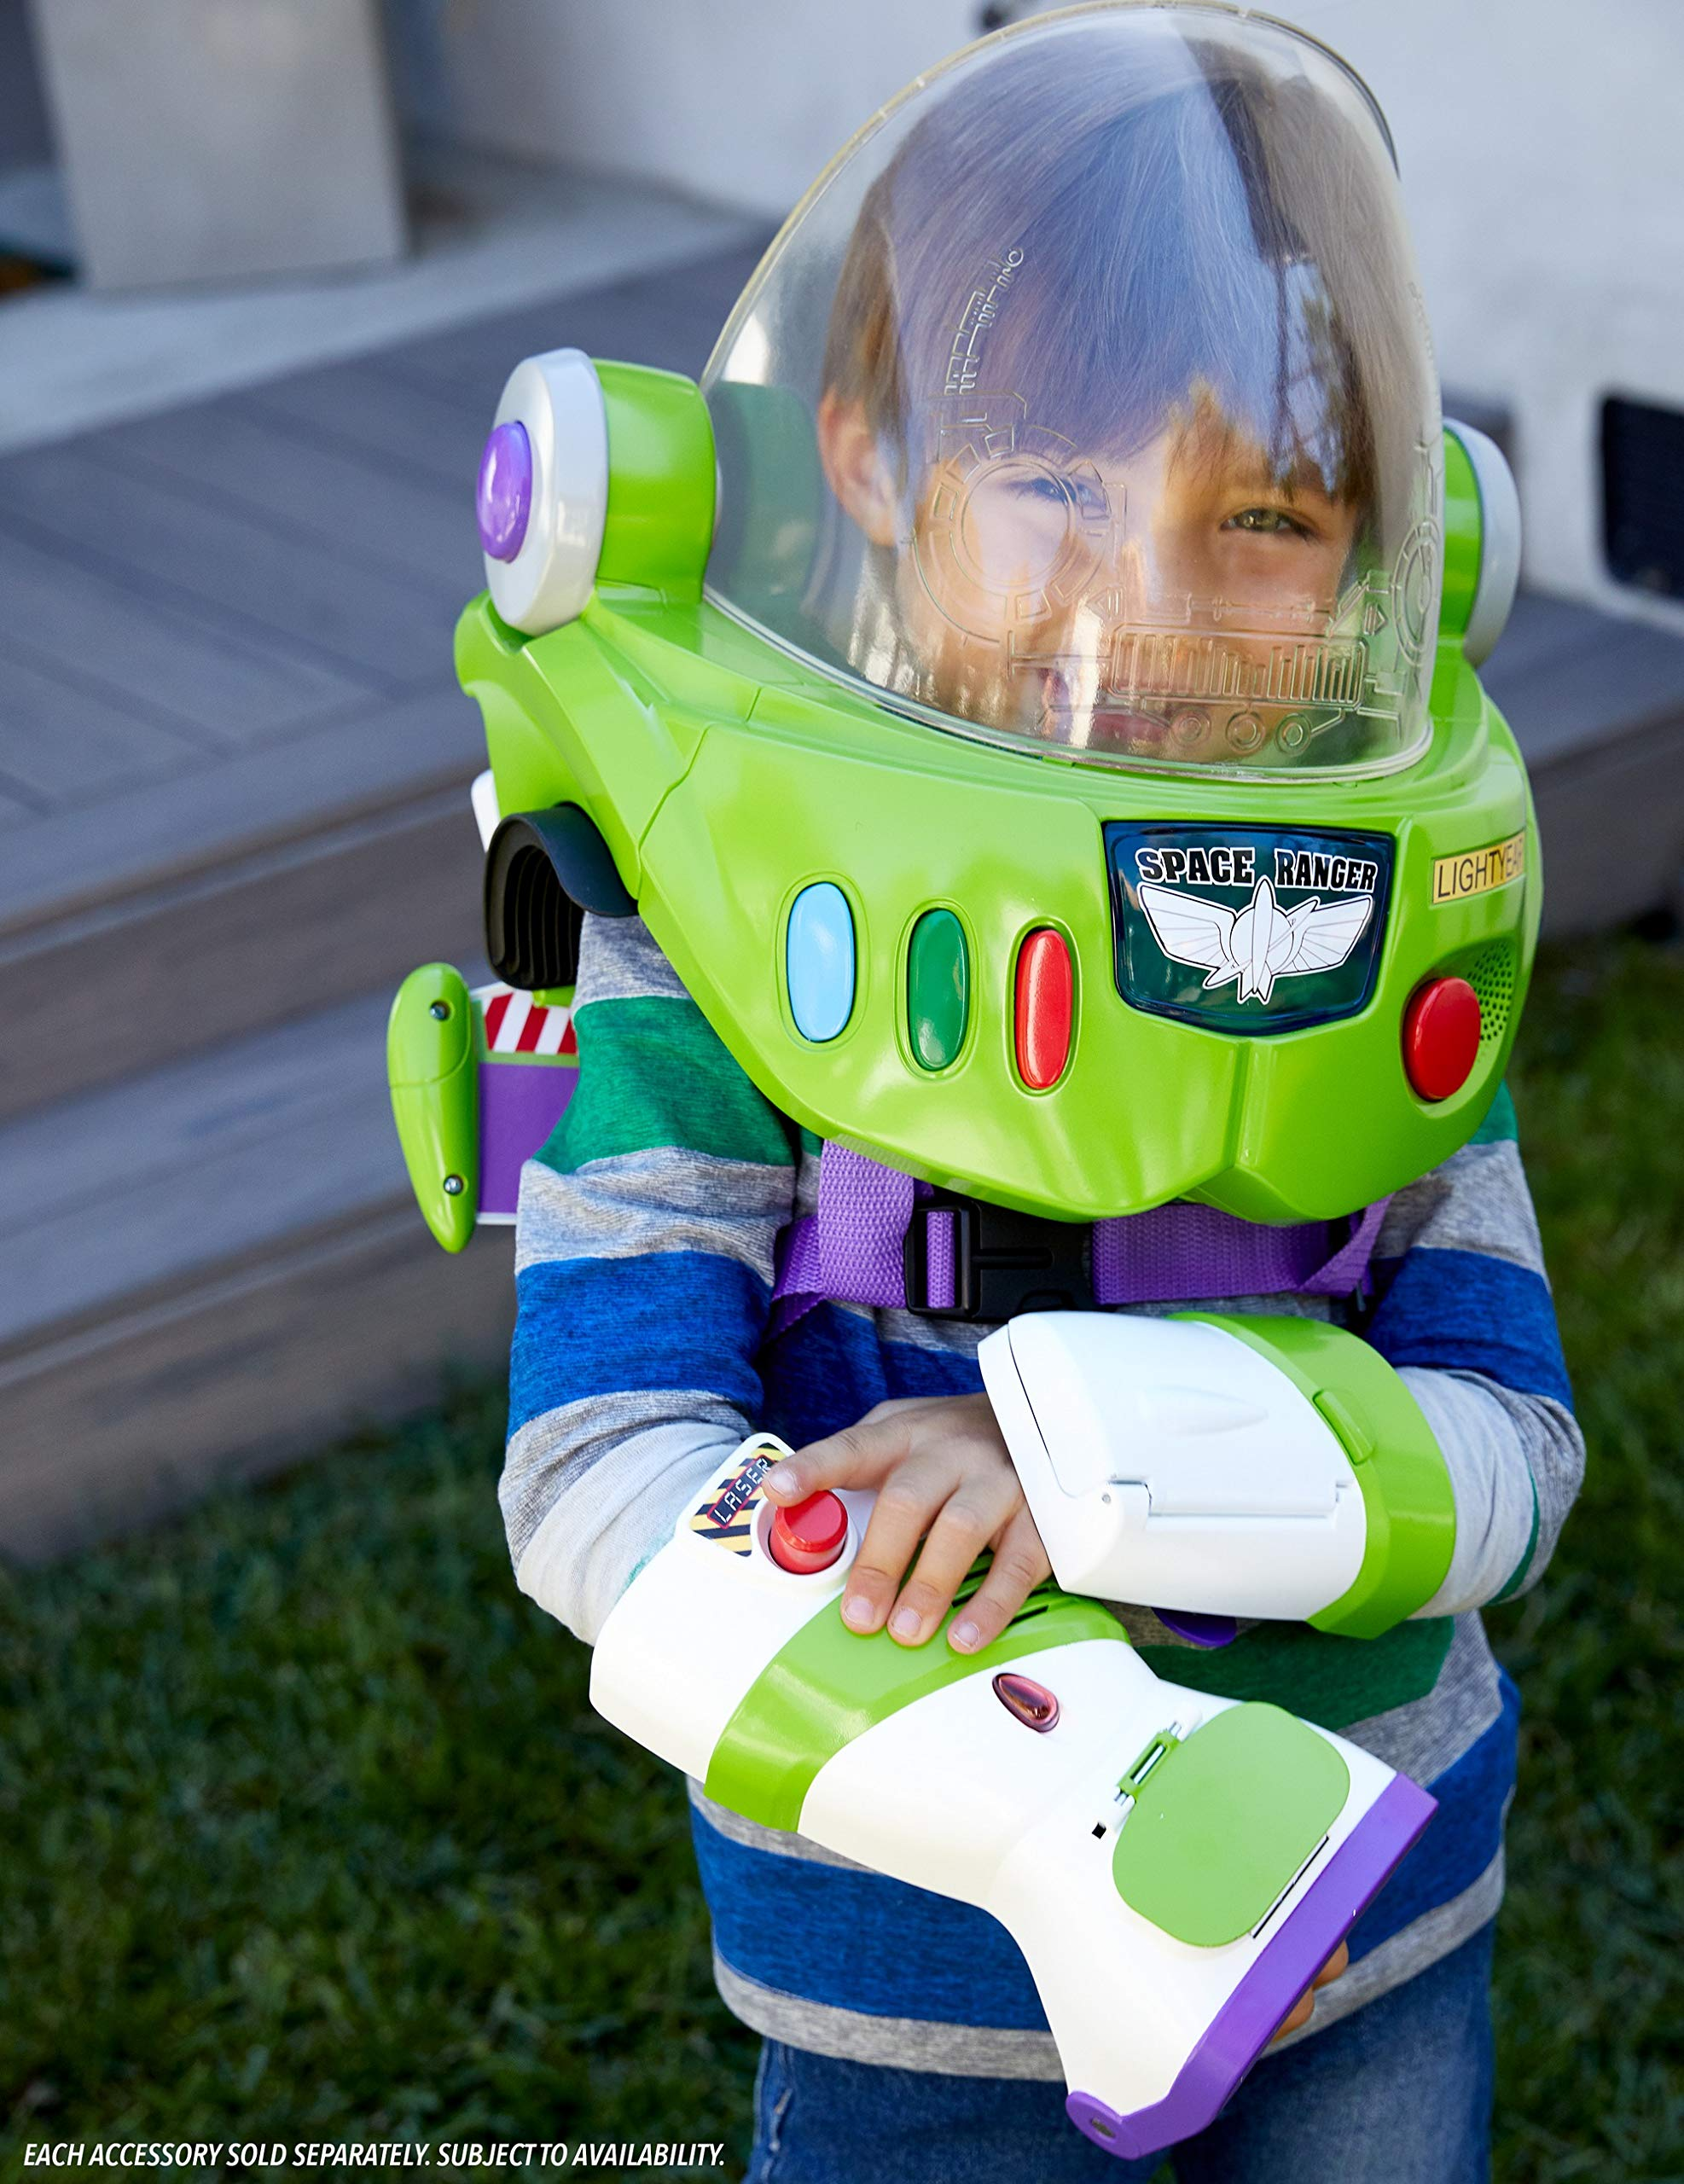 Toy Story Disney Pixar 4 Buzz Lightyear Space Ranger Armor with Jet Pack by Toy Story (Image #14)